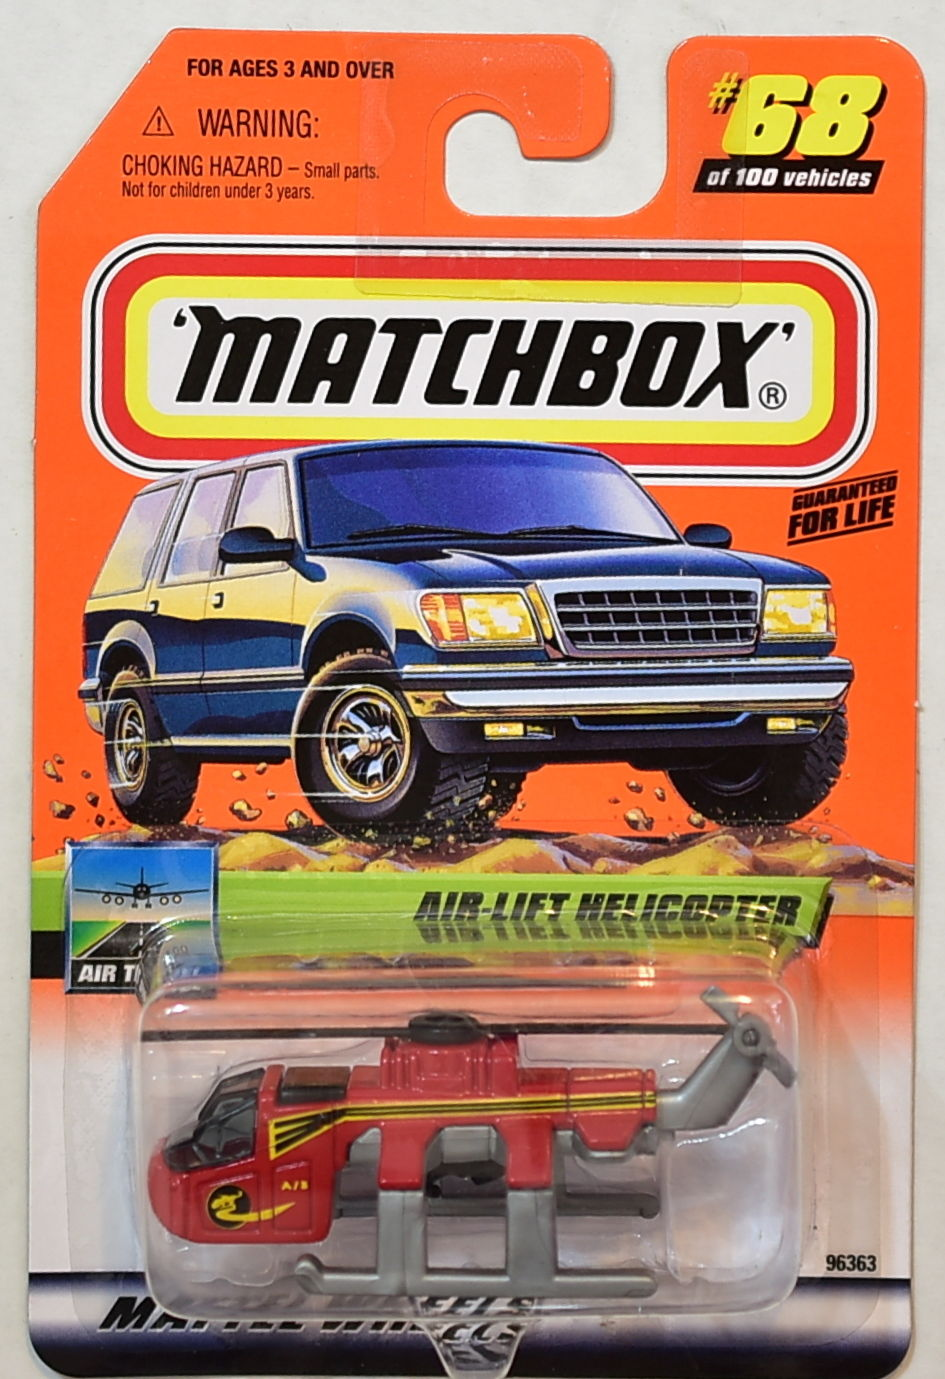 MATCHBOX 2000 #68 OF 100 AIR-LIFT HELICOPTER AIR TRAVEL